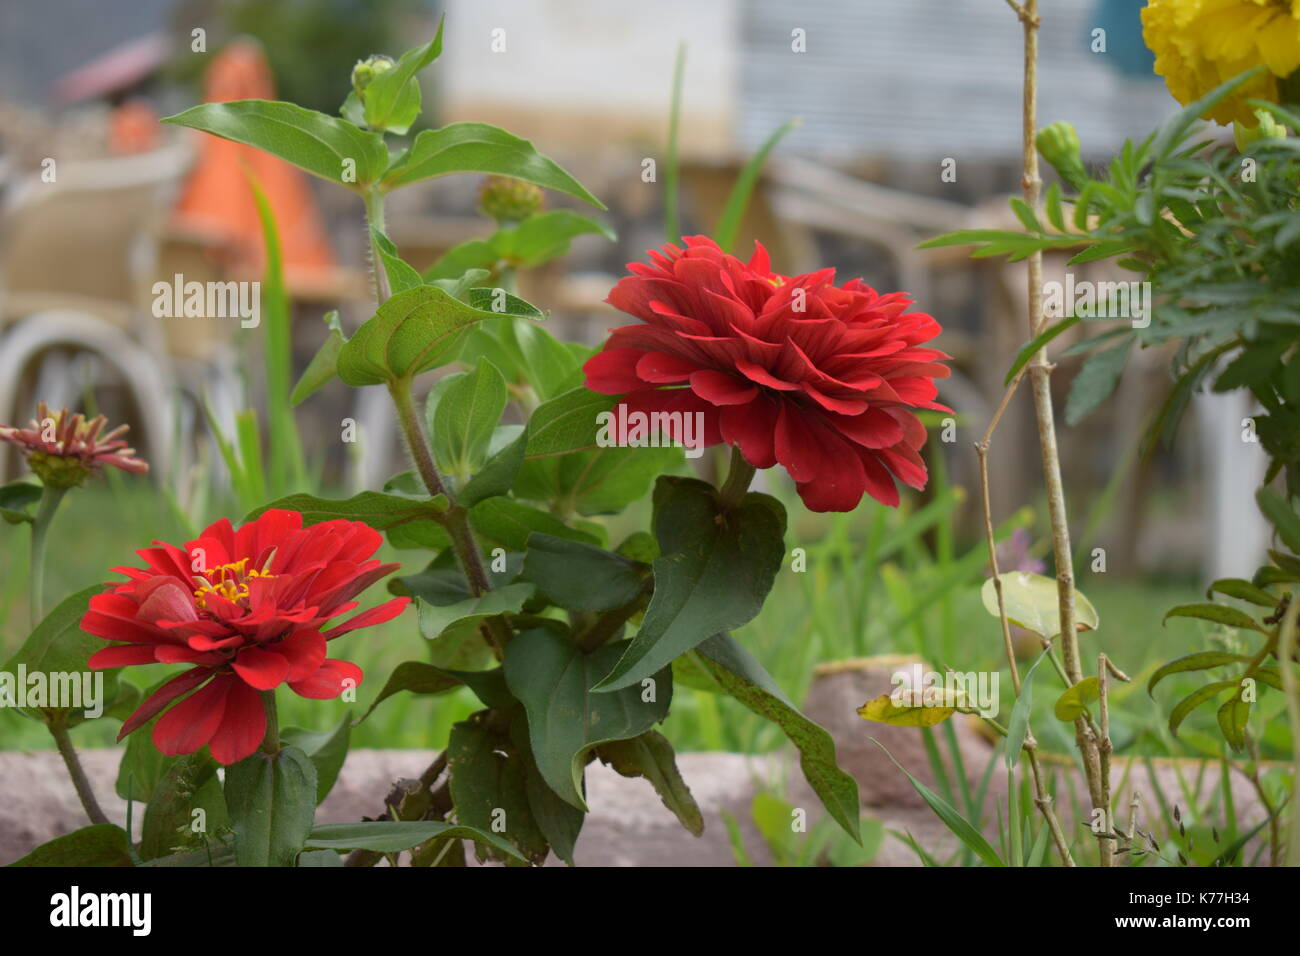 Red Flowers captured by a Nikon D5300 - Stock Image